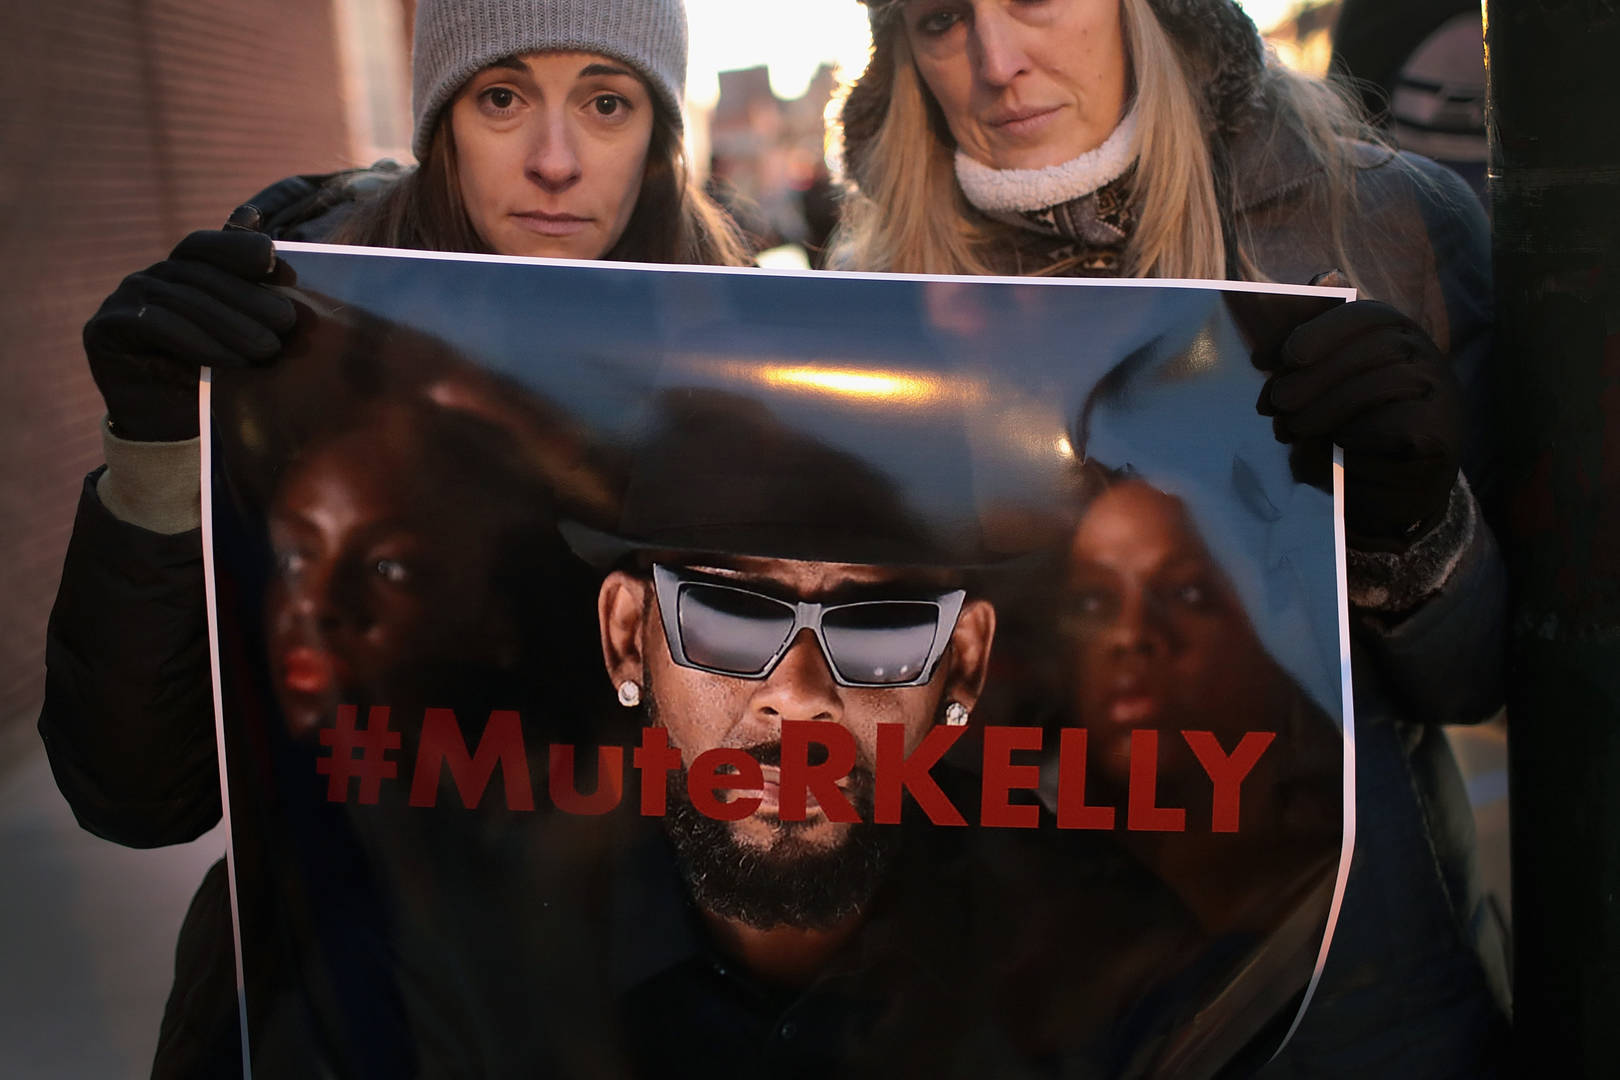 Surviving kelly: Sony Music and R. Kelly split